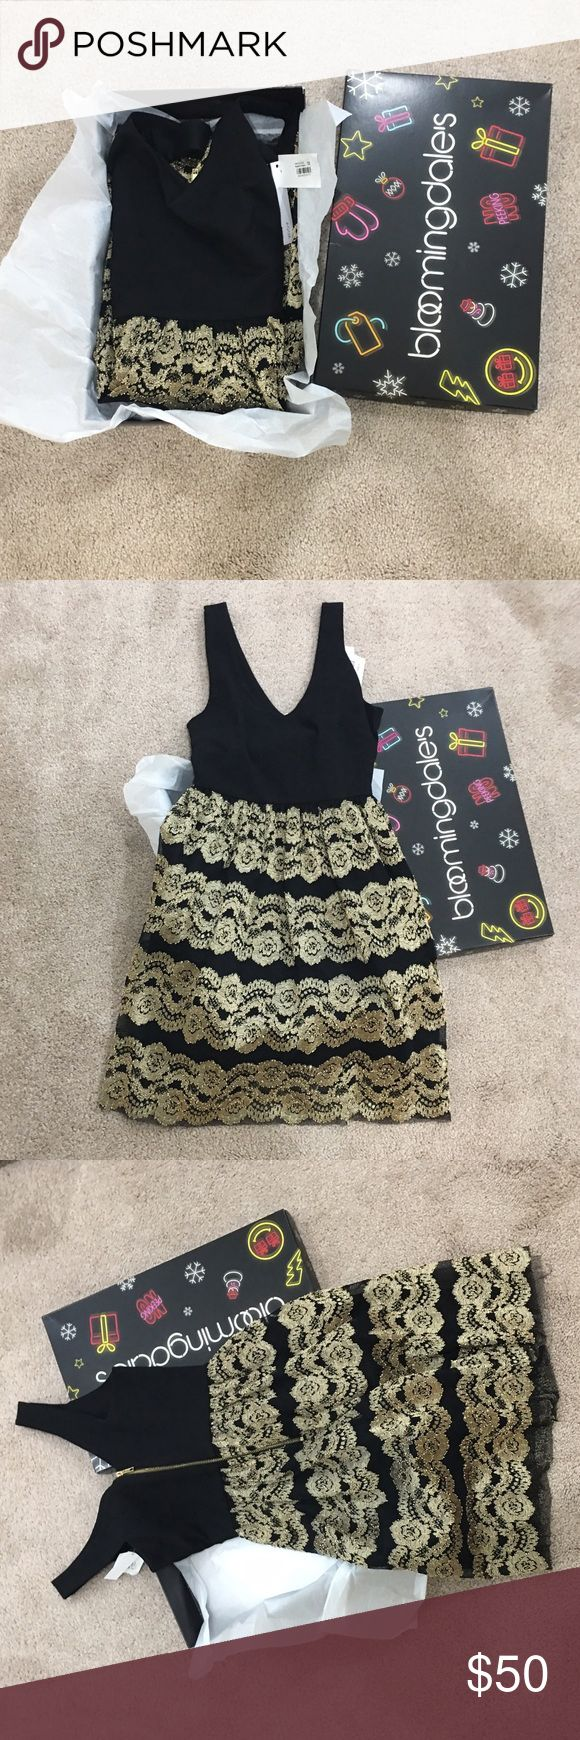 New in box Aqua Dress XS Purchased from Bloomingdales.  Still in box with tags.   Too late to return.  Colors are gold and black.  Zipper closure in back. Works perfectly.  XS, runs true.   Will ship with box.  Fits a little below the knee. Aqua Dresses Midi